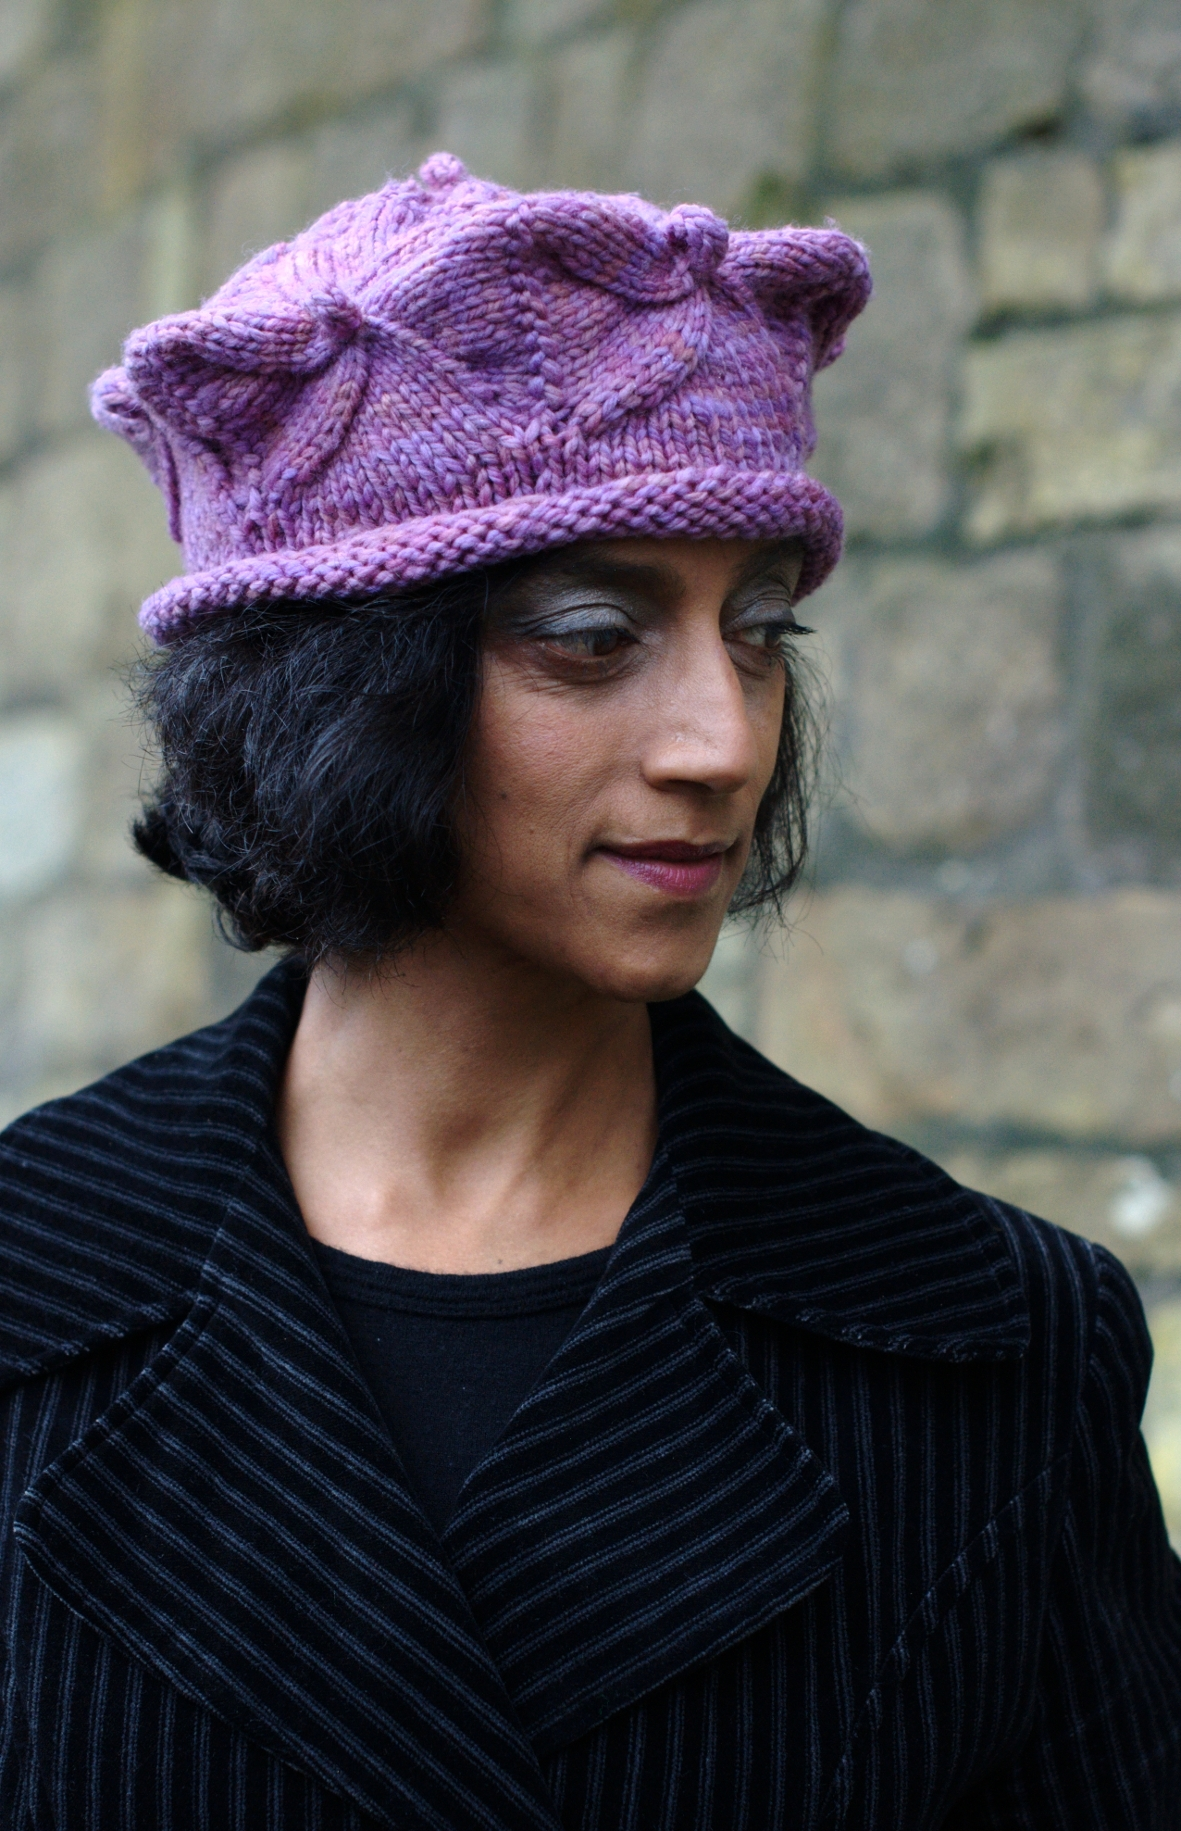 Tudor Cap sculptural Hat hand knitting pattern